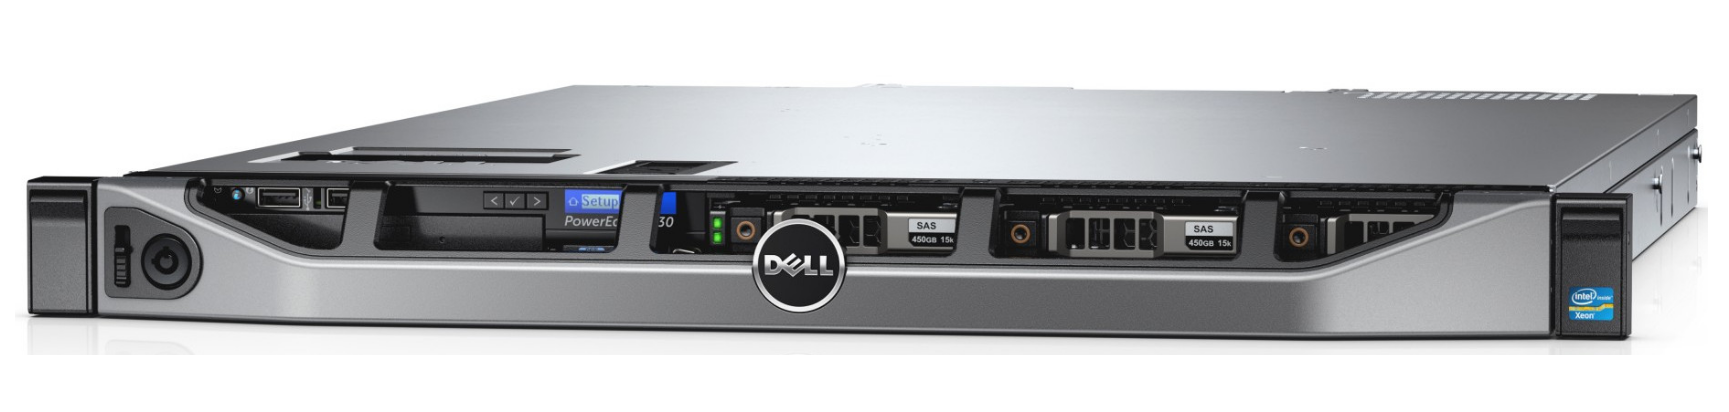 Dell PowerEdge R430 CTO Rack Server